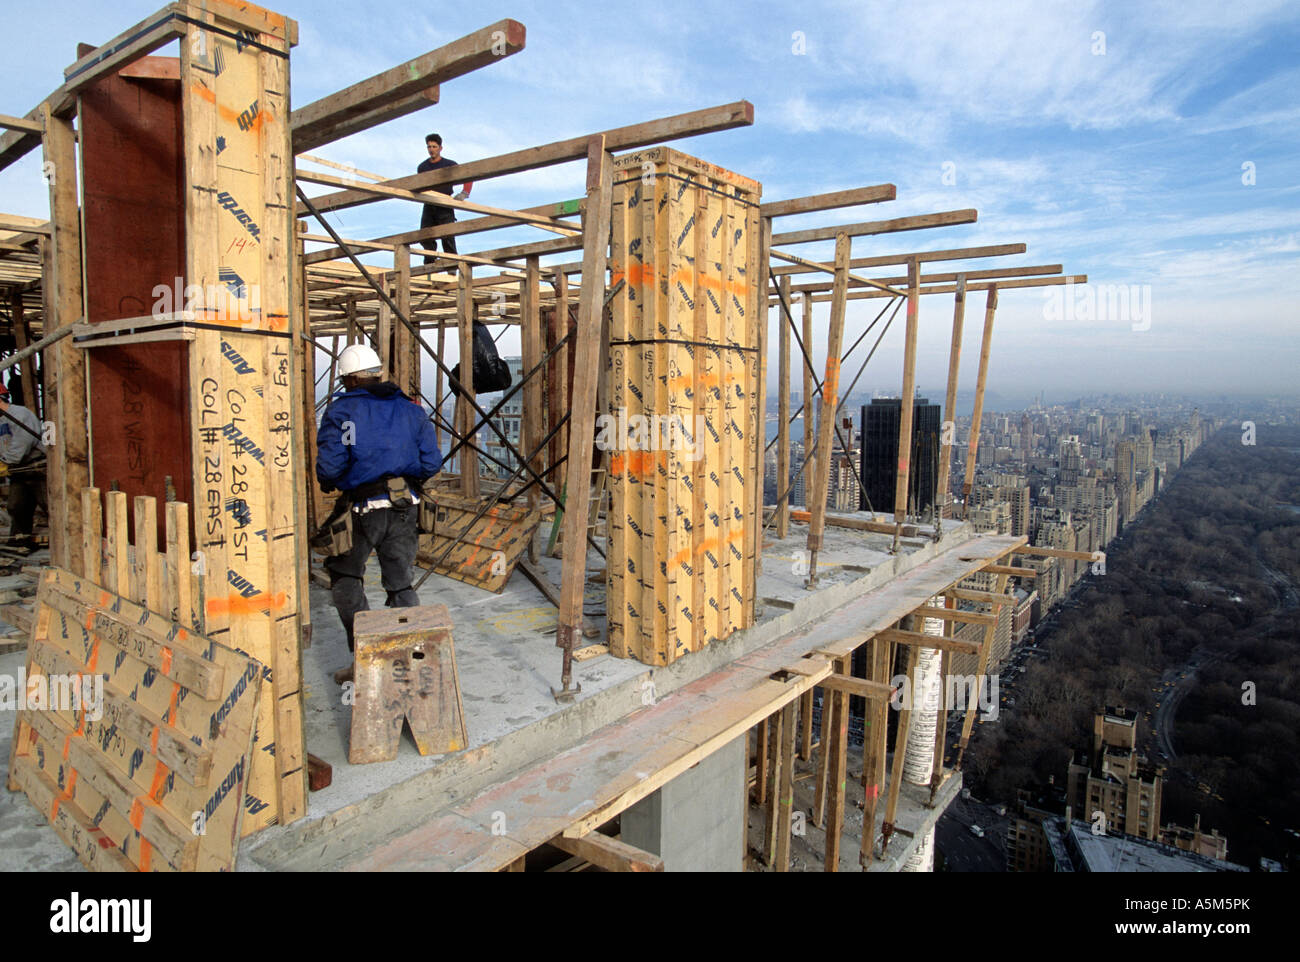 Carpenters build frame for floors in reinforced concrete construction in New York City - Stock Image